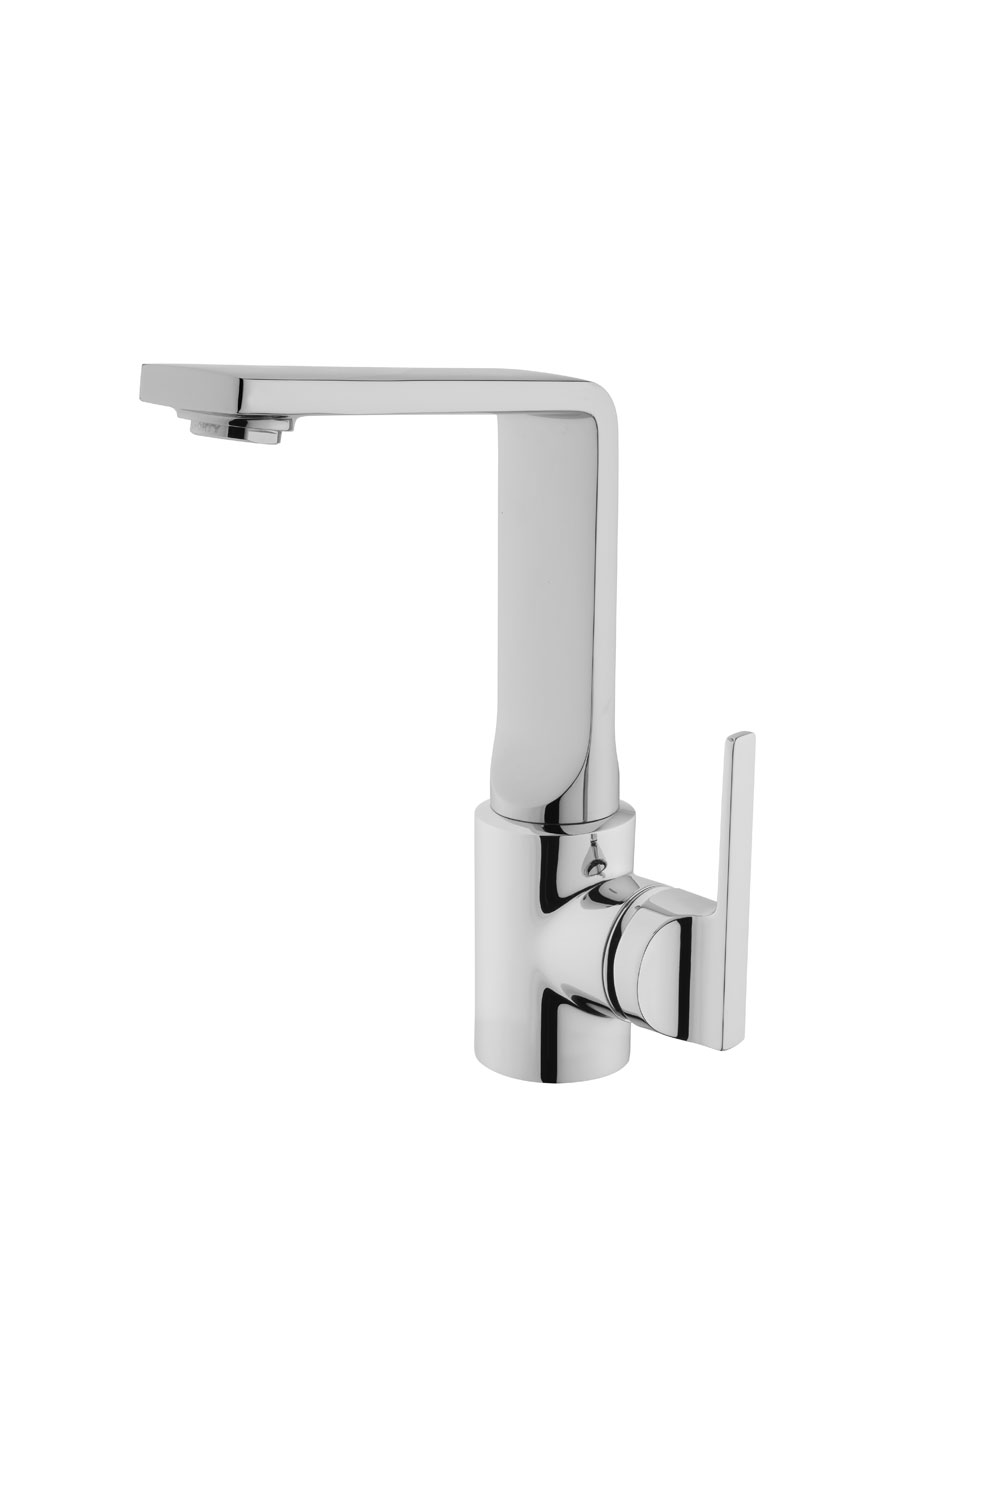 click on Monobloc Basin Mixer with Swivel Spout image to enlarge